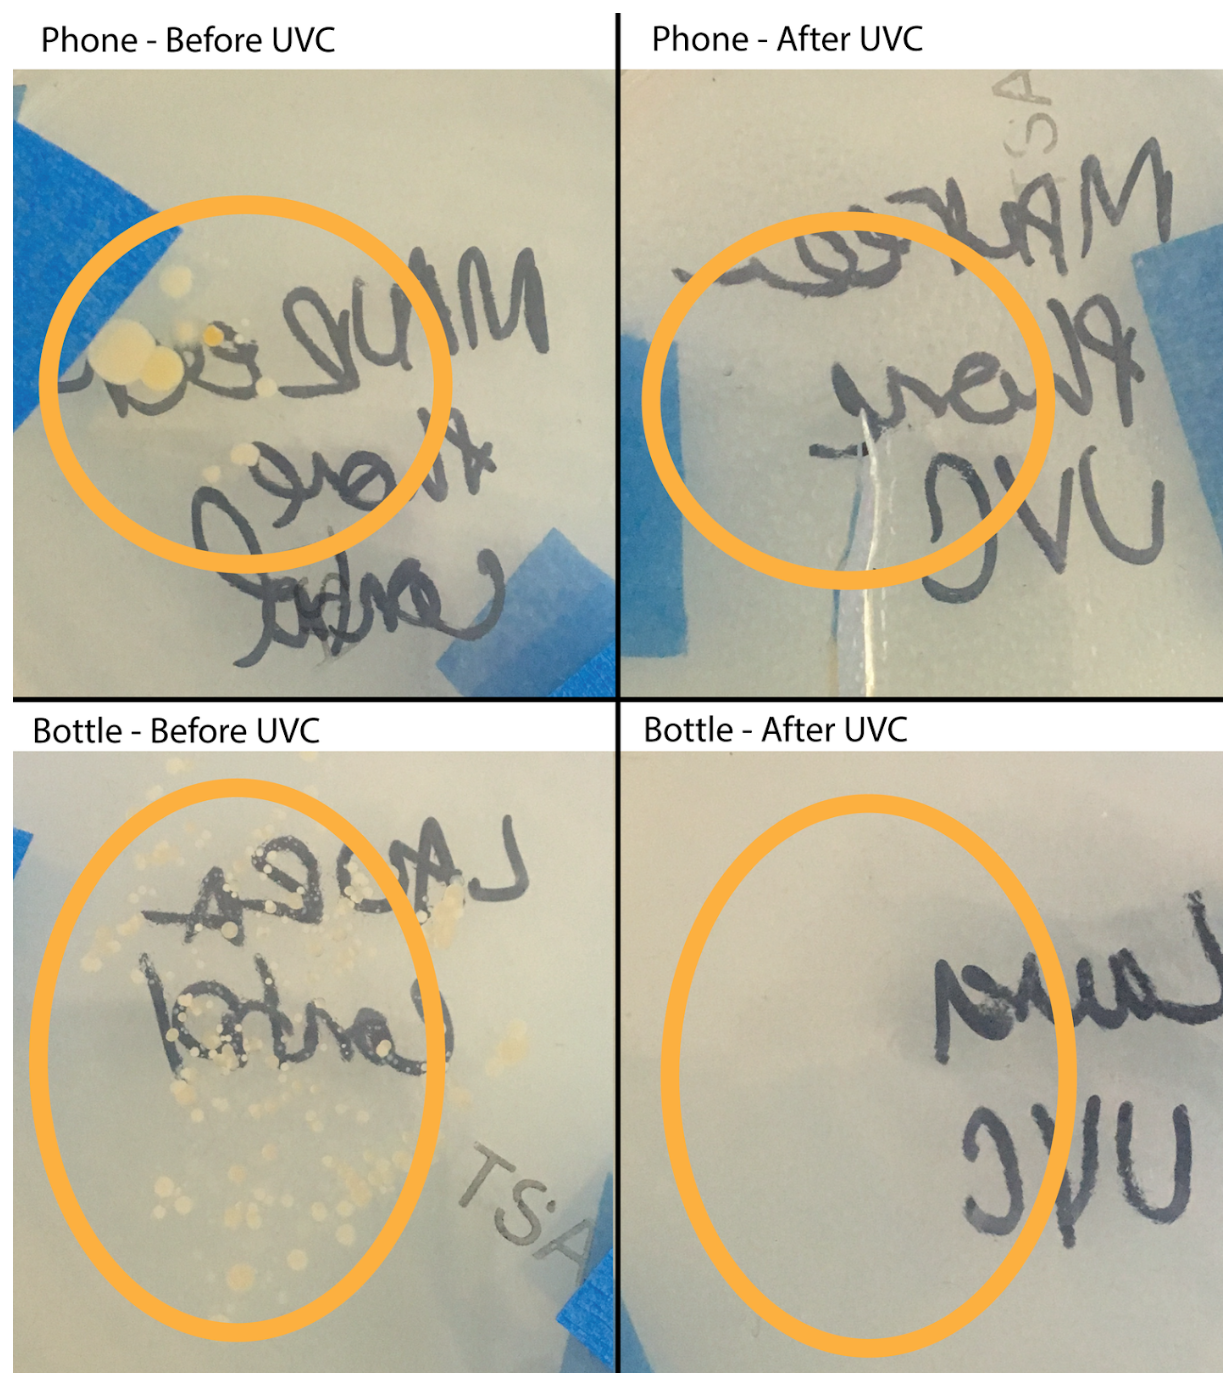 Bacterial outcomes after being treated with UV-C light